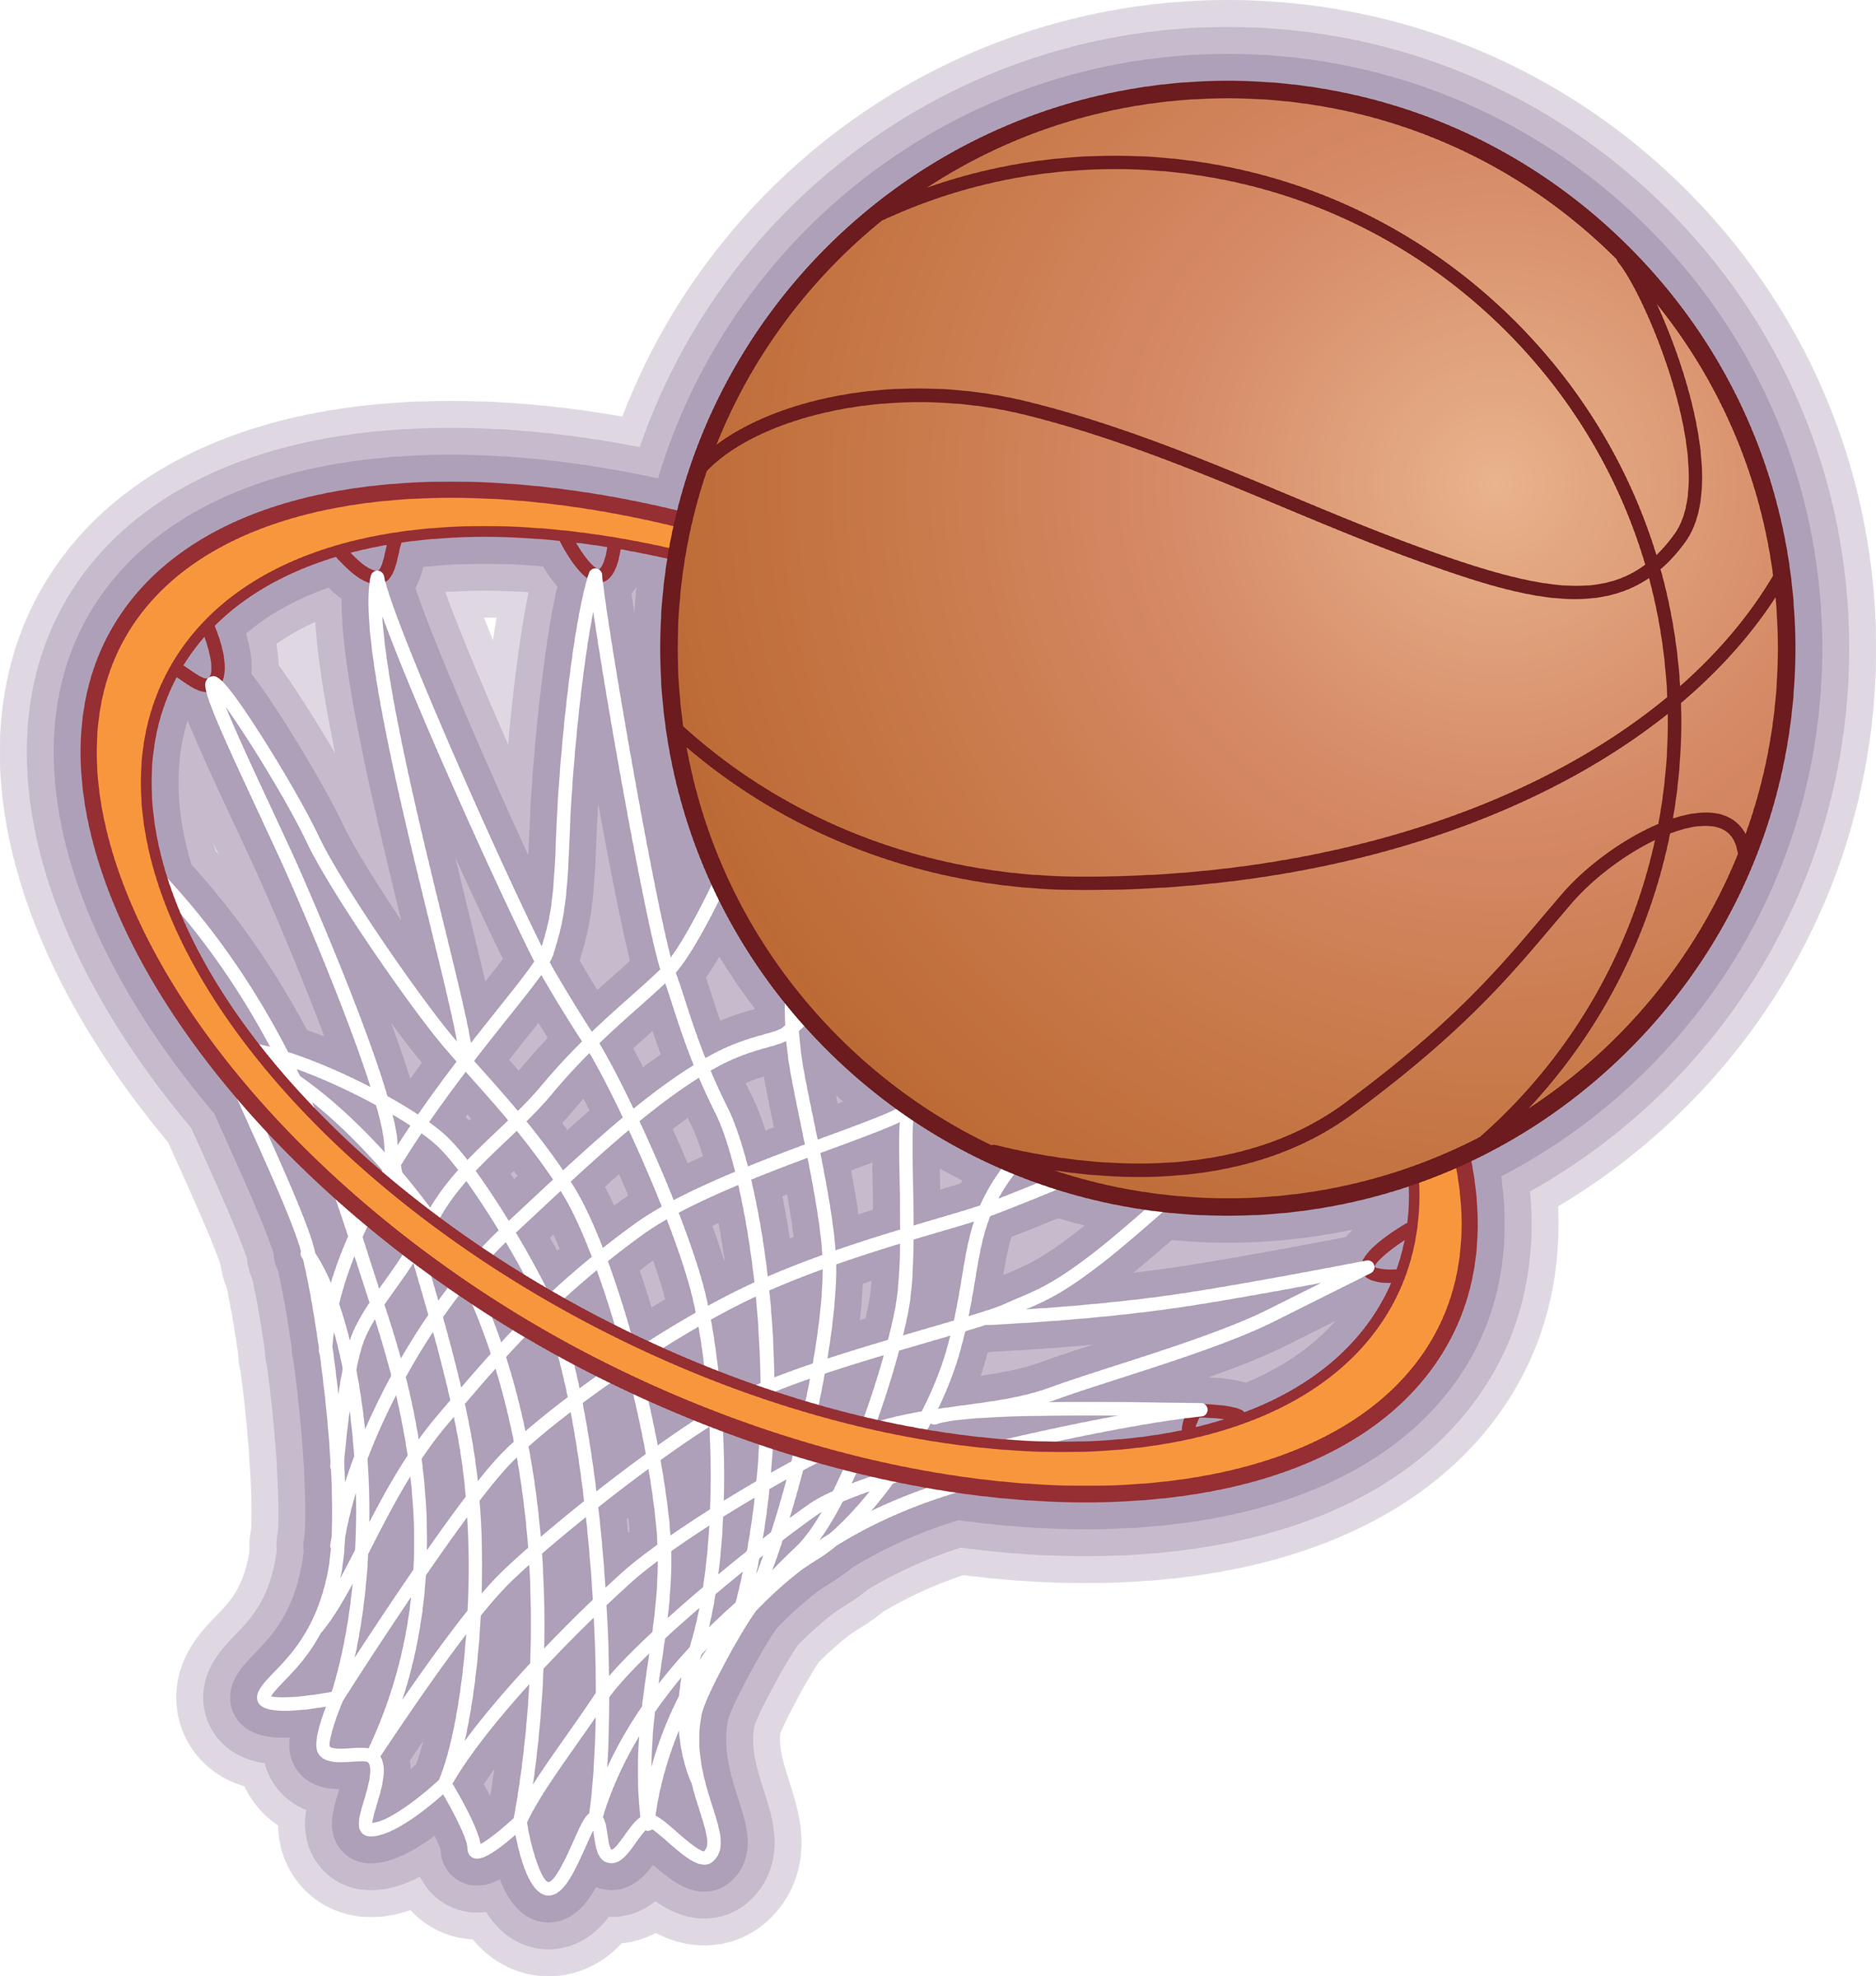 Basketball hoop with ball clipart image royalty free Programs | Grant Beach Neighborhood Association image royalty free